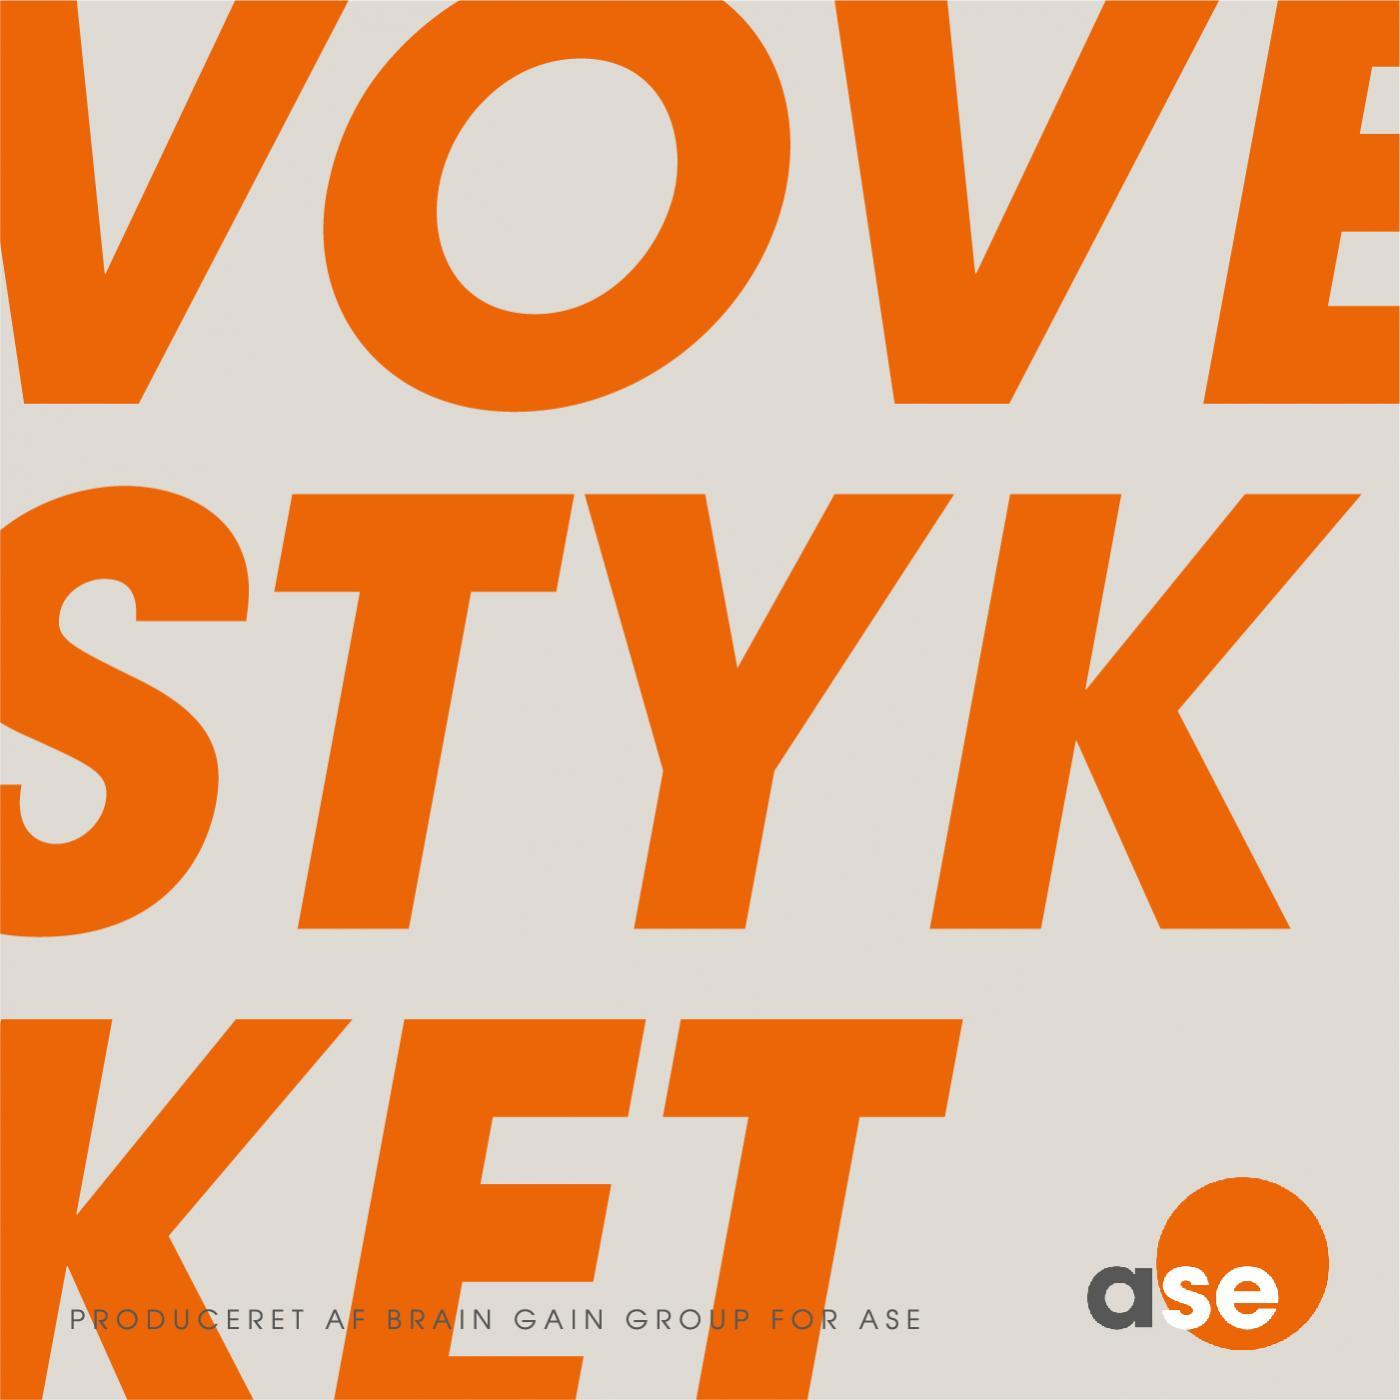 Vovestykket #6: Innovation vs. business as usual